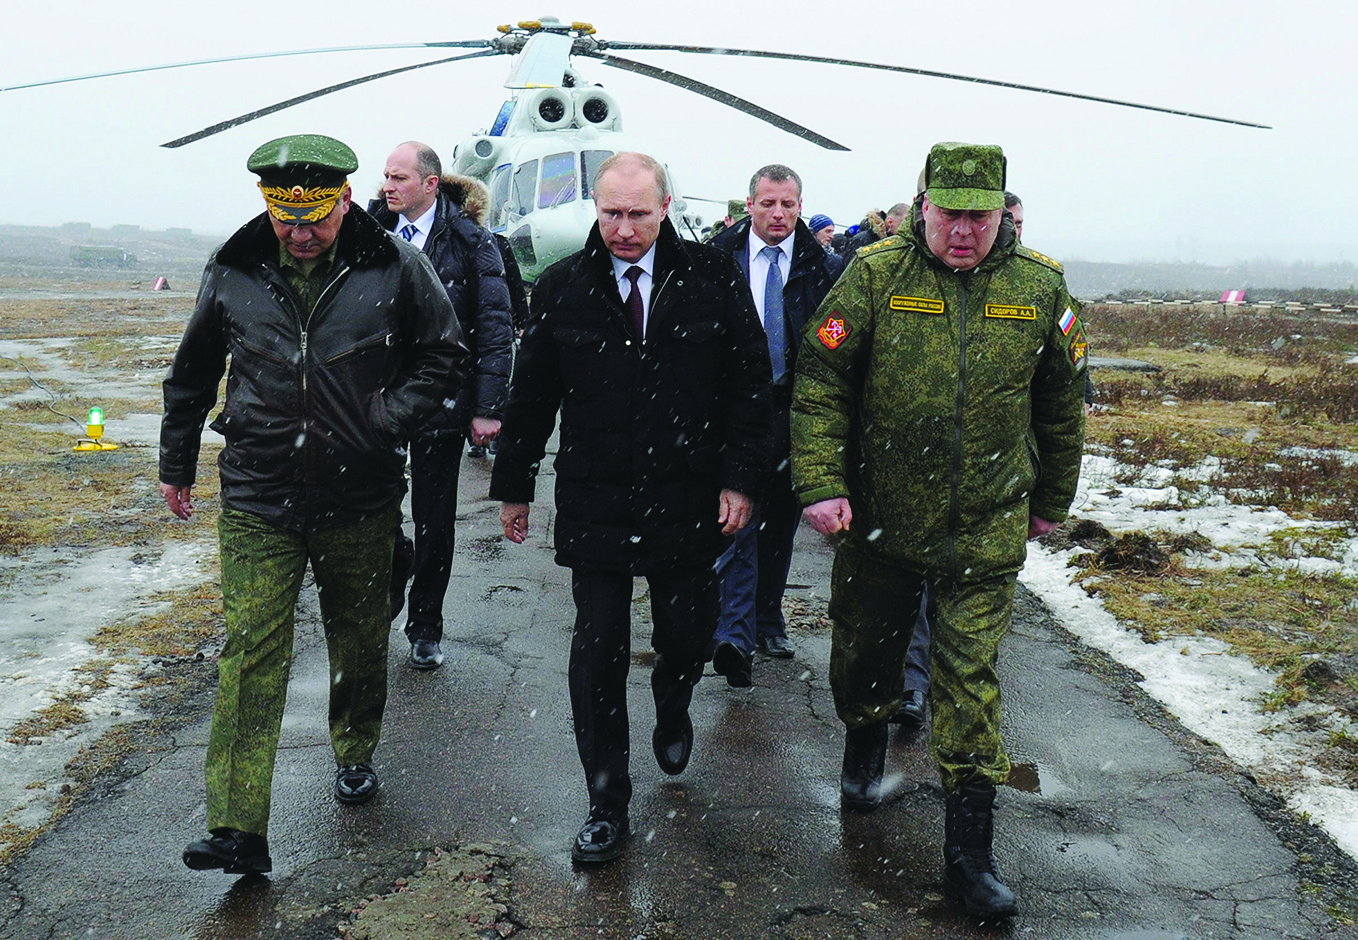 LENINGRAD, RUSSIA - MARCH 3: Russian Head of State Vladimir Putin orders to Russian army to finish drills in west and center military region in Leningrad, Russia on March 3, 2014. According to datas of Russia Ministry of Defence, in order to examine battle readiness of Russian army, 150 thousands of soldiers, 90 warcrafts, helicopters above 120, 880 tank and 1200 military vehicle join to drill. (Photo by Kremlin Press Information Centre/Anadolu Agency/Getty Images)